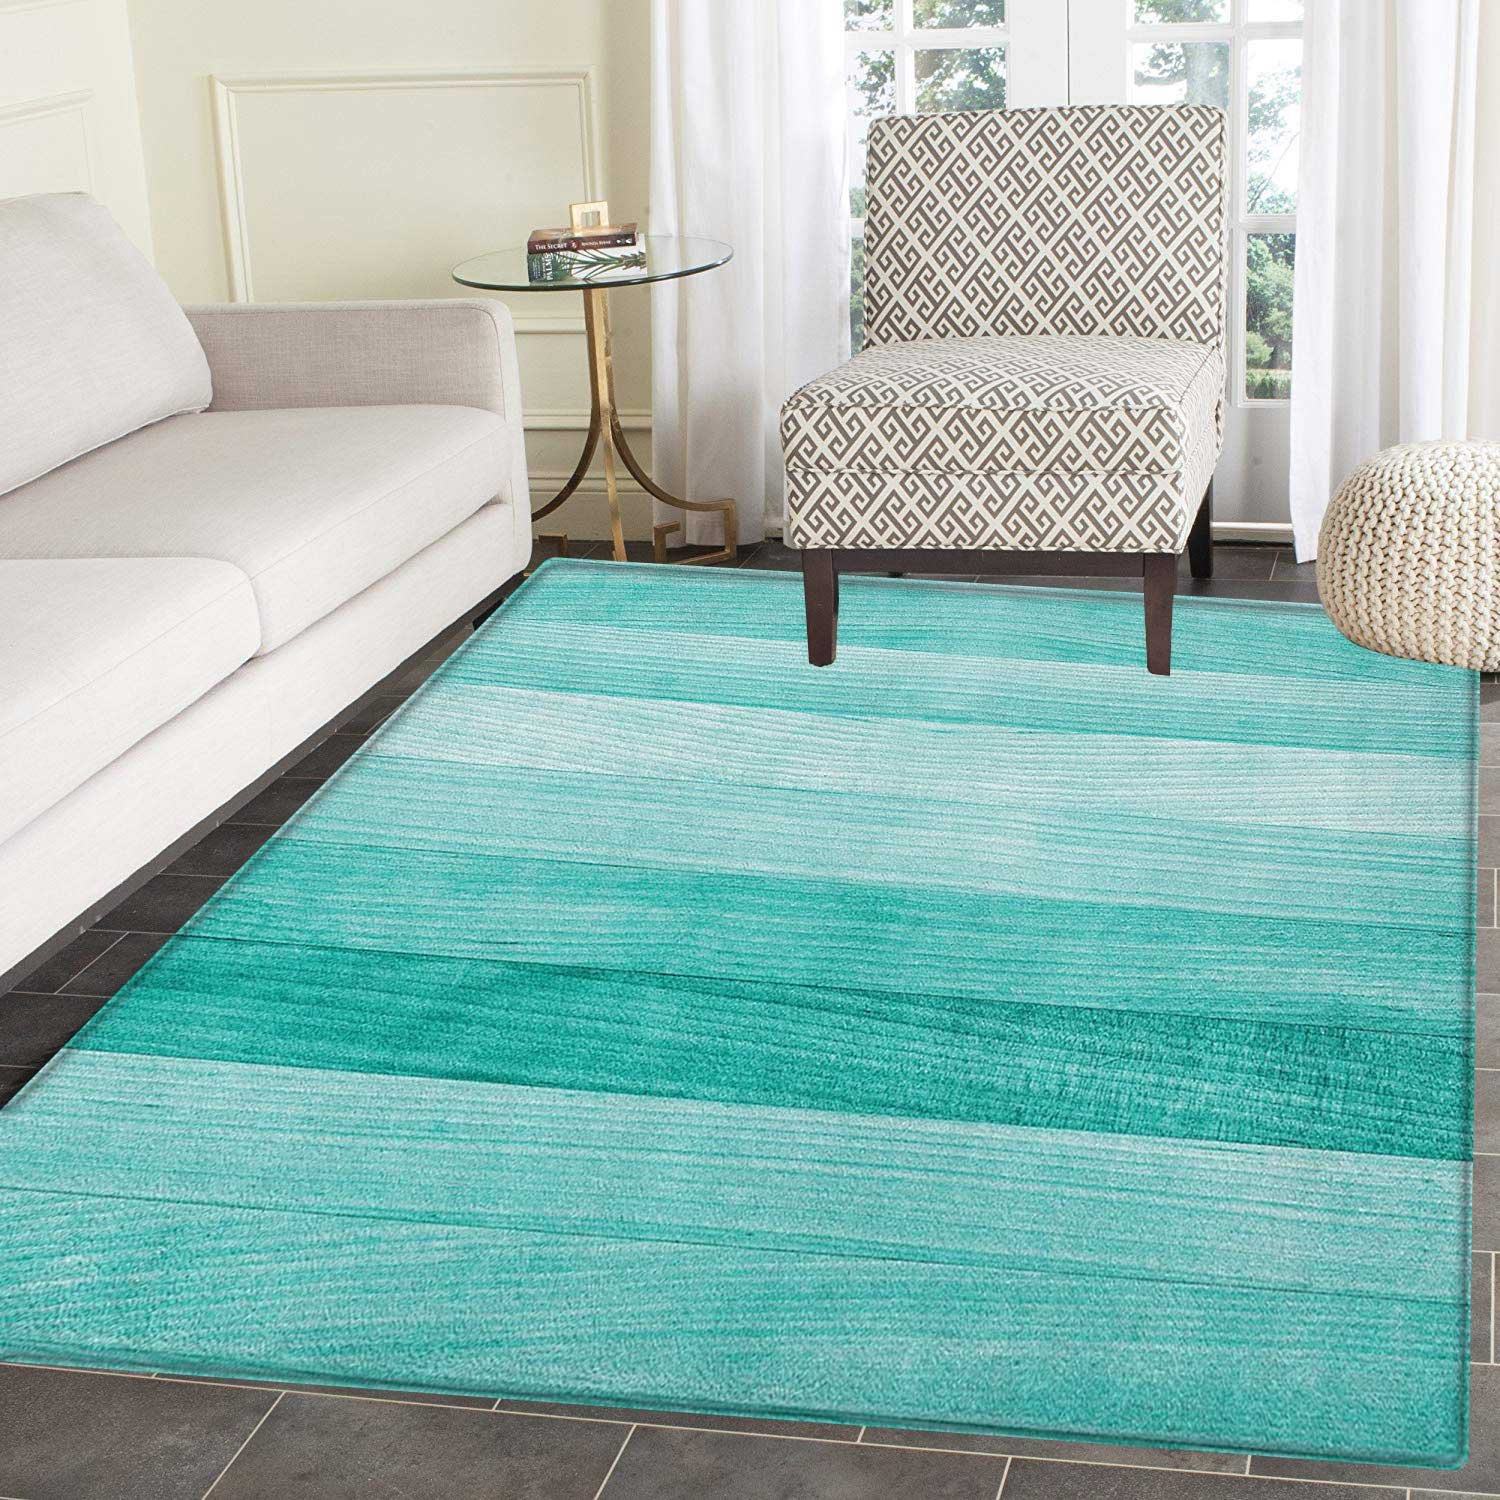 Teal Rug Kid Carpet Painted Wood Board with Horizontal Lines Birthdays Easter Holiday Print Backdrop Image Home Decor Foor Carpe 4'x6' Turquoise